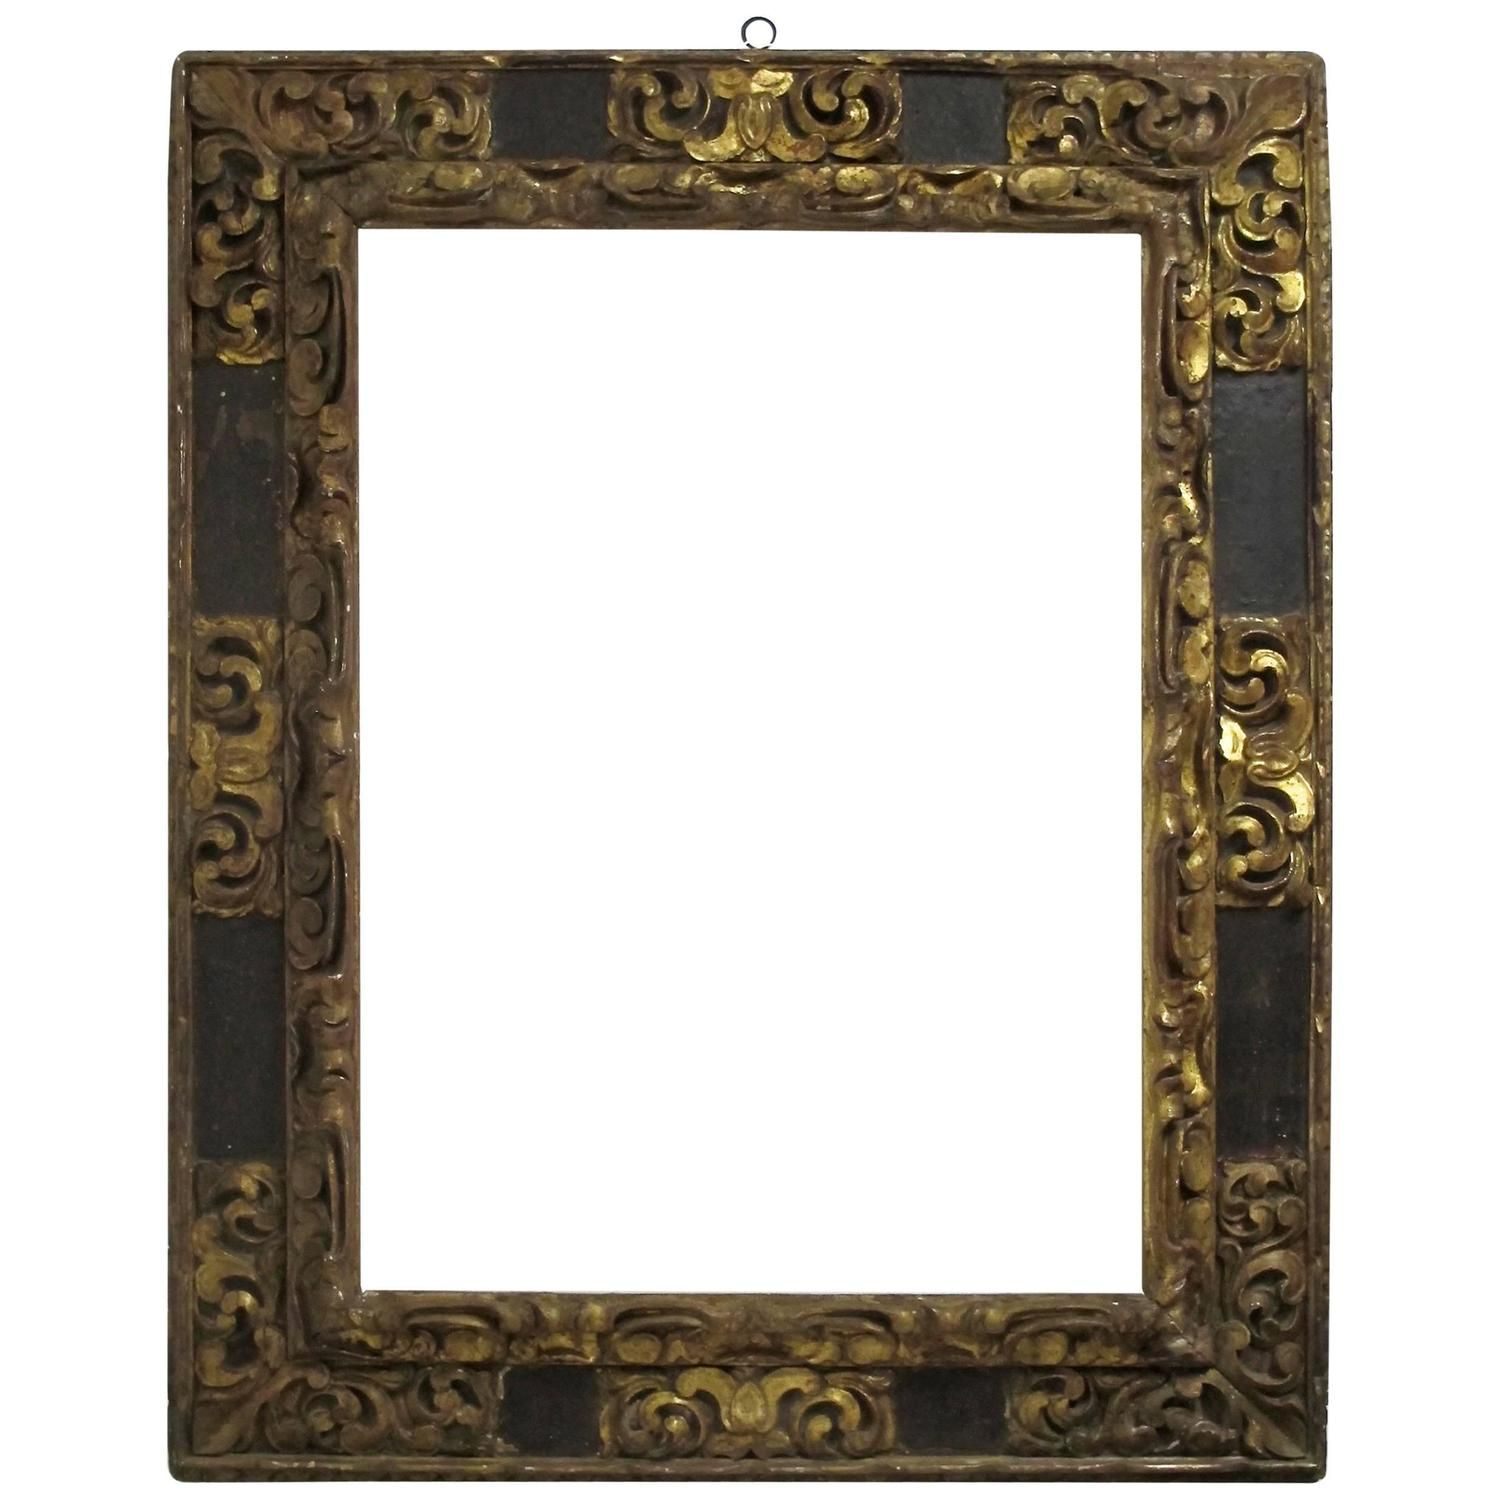 18th Century Spanish Colonial Frame Painted and Gilt | Timme G ...